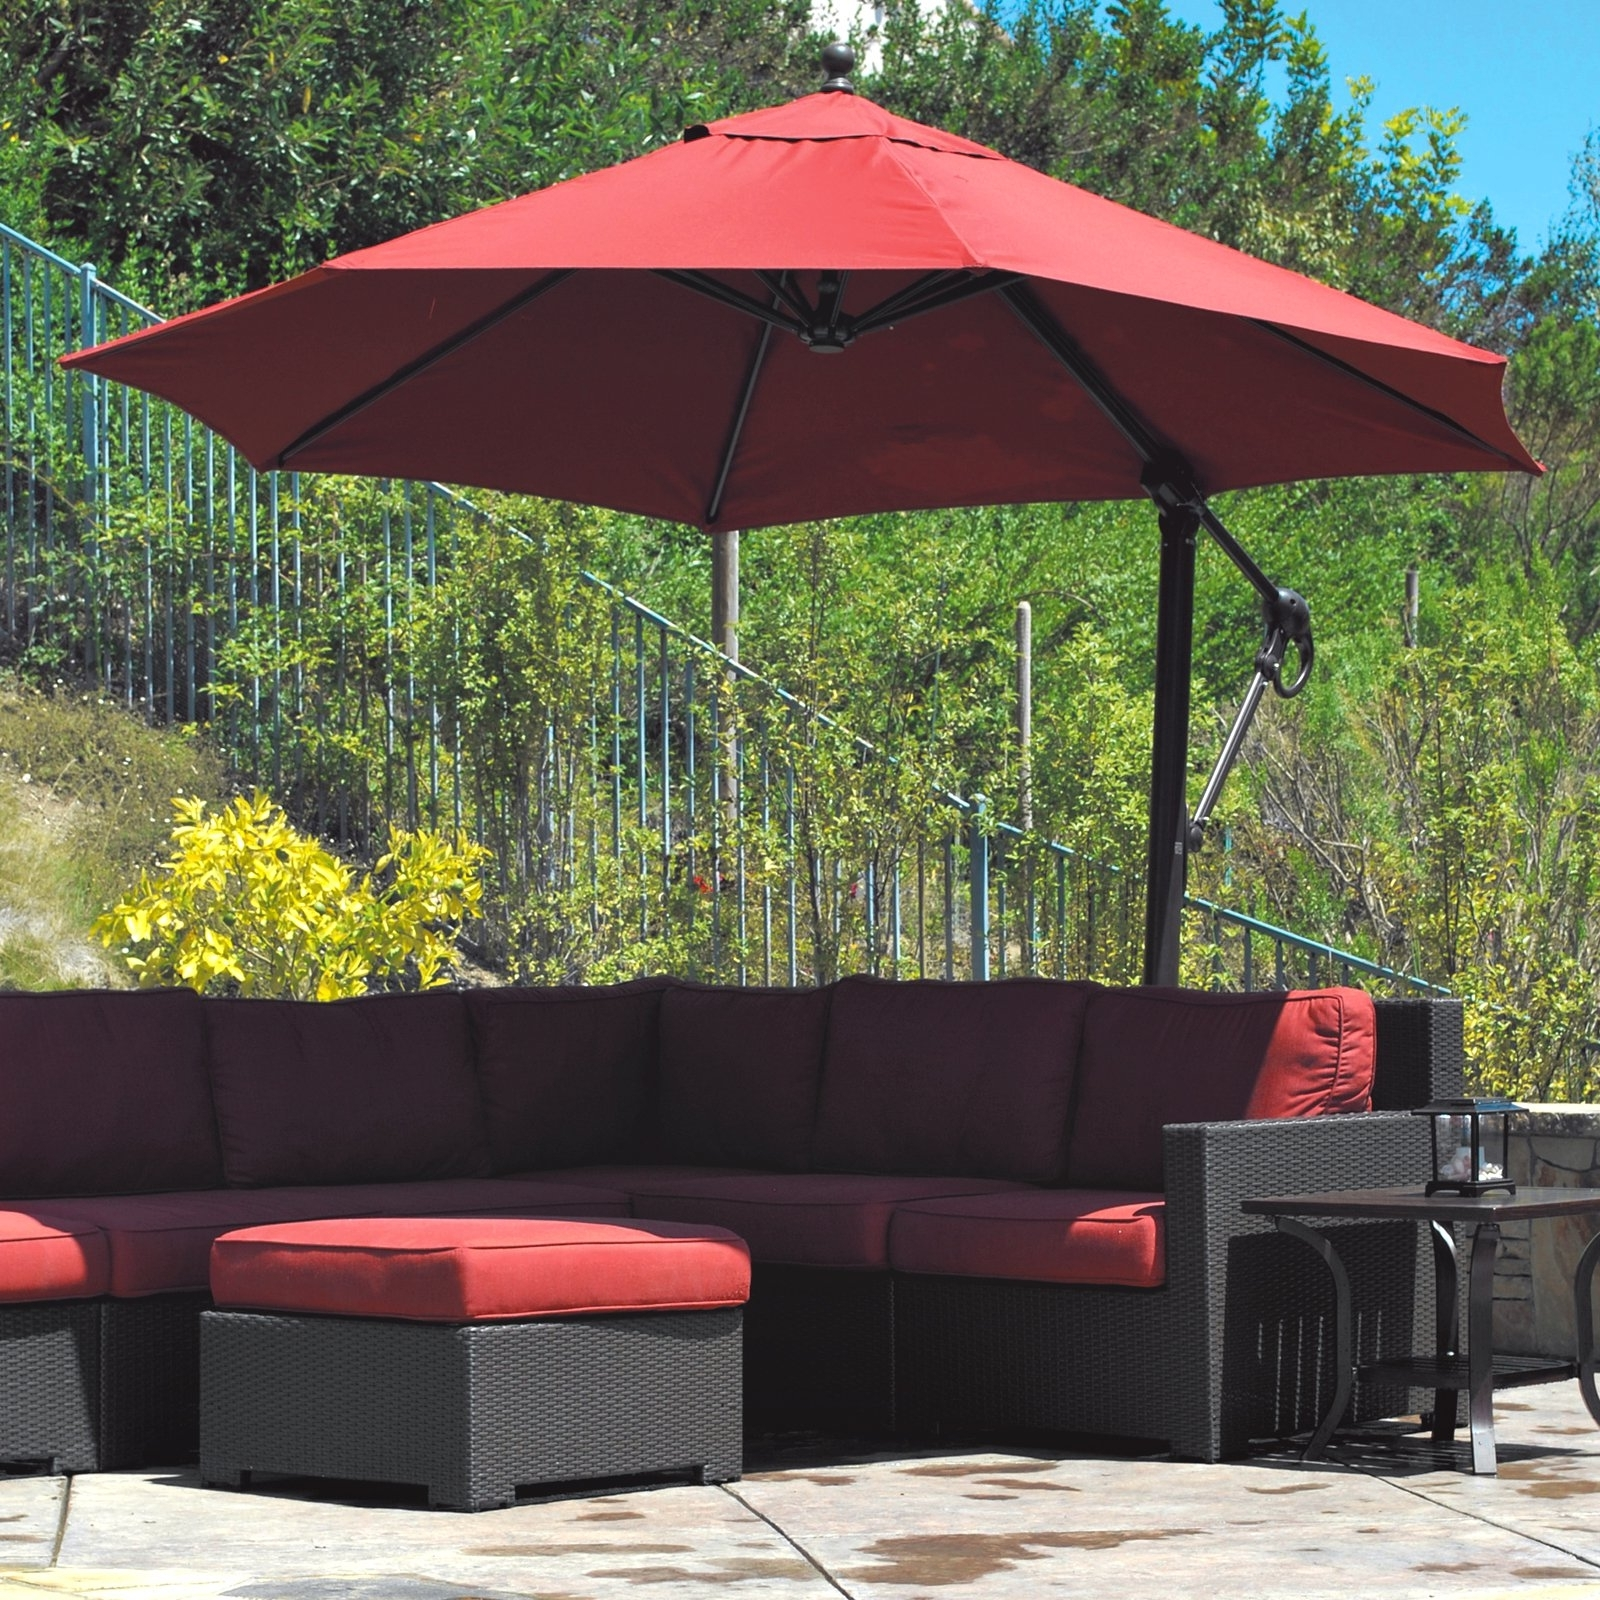 Best Small Patio Umbrella Ideas : Life On The Move – Nice Small Throughout Latest Small Patio Tables With Umbrellas (Gallery 14 of 20)